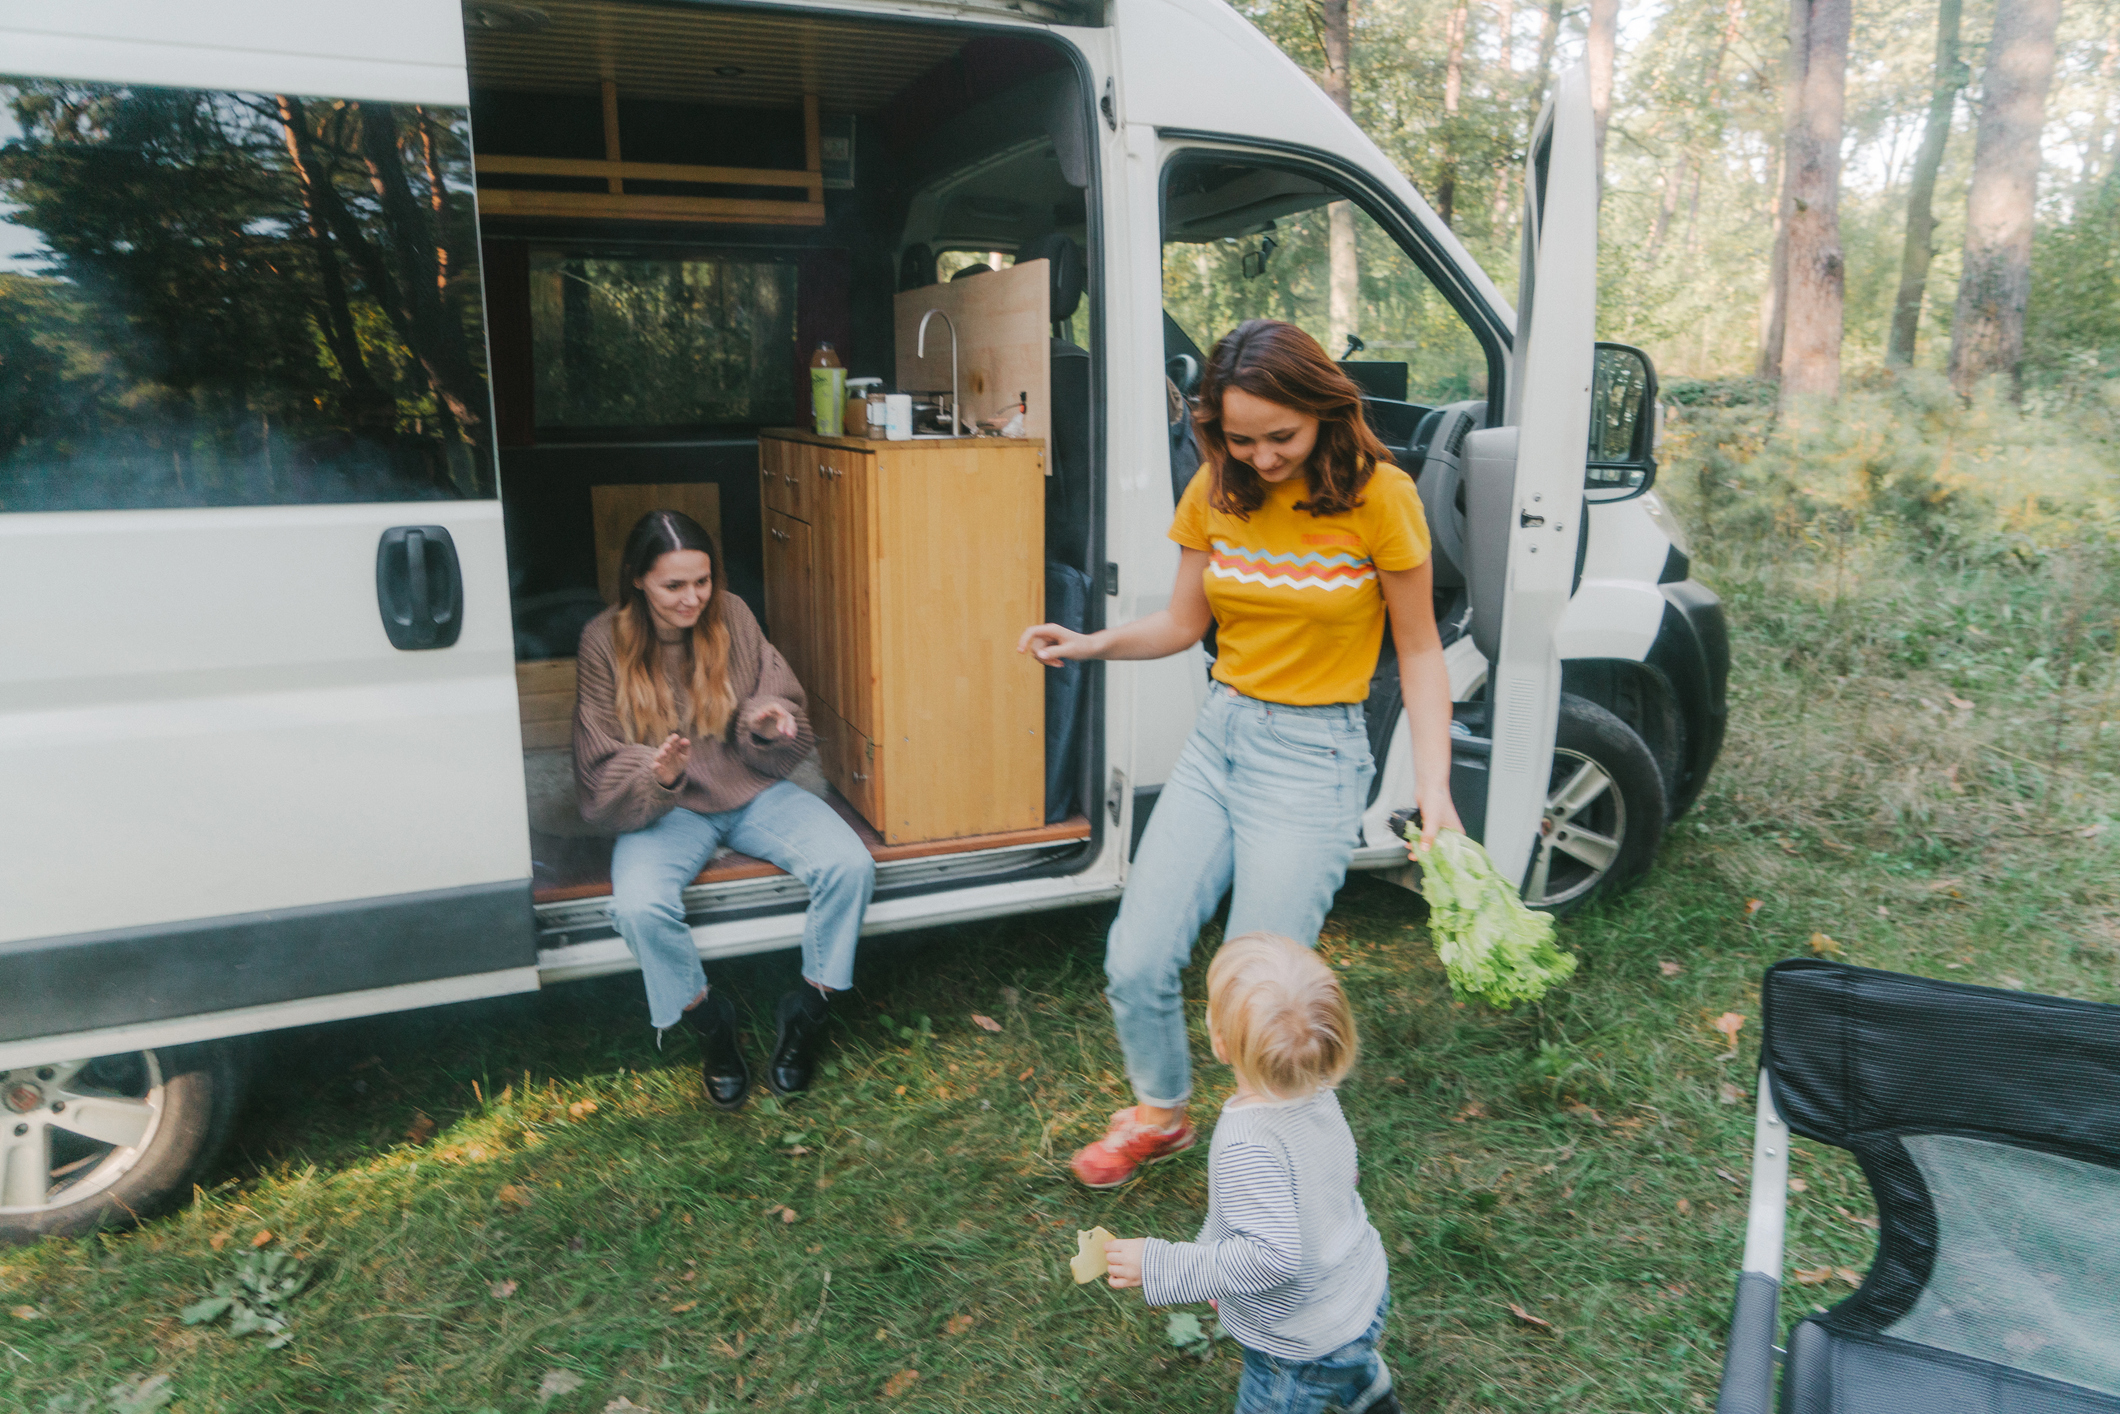 Cheap RV Vacations | These 10 Free Camping Spots Will Save You Money